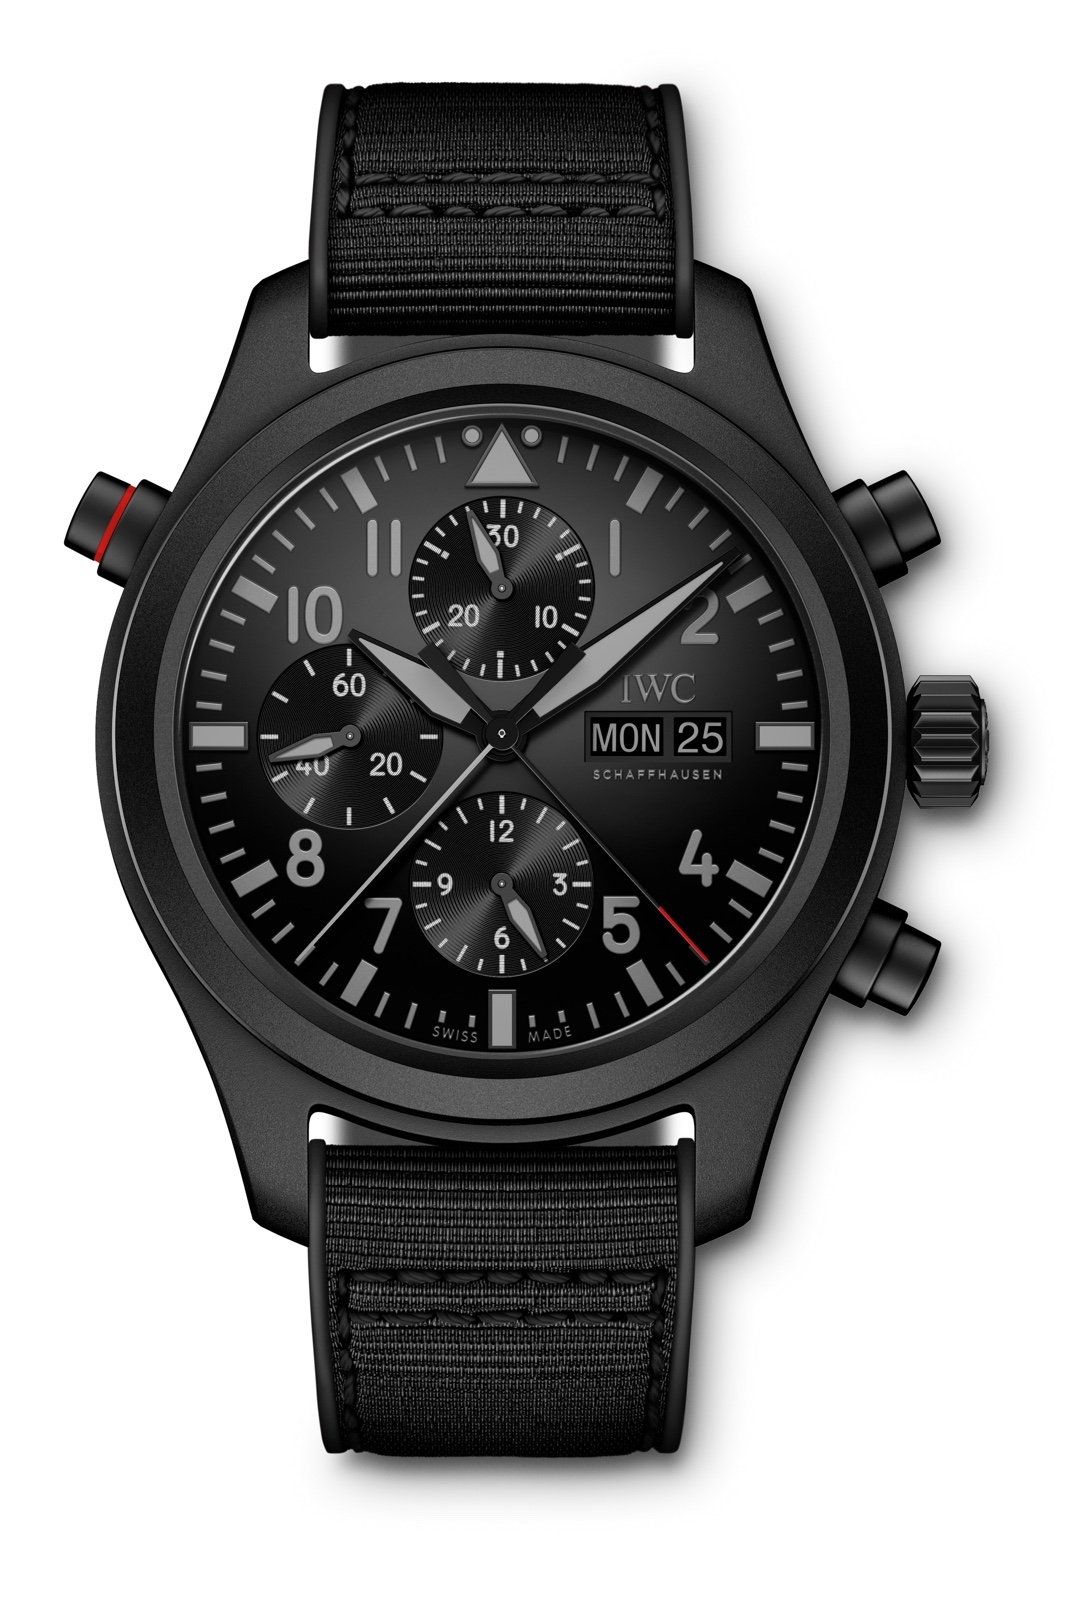 IWC-Pilots-Watch-Doble-Cronógrafo-Top-Gun-Ceratanium-Front